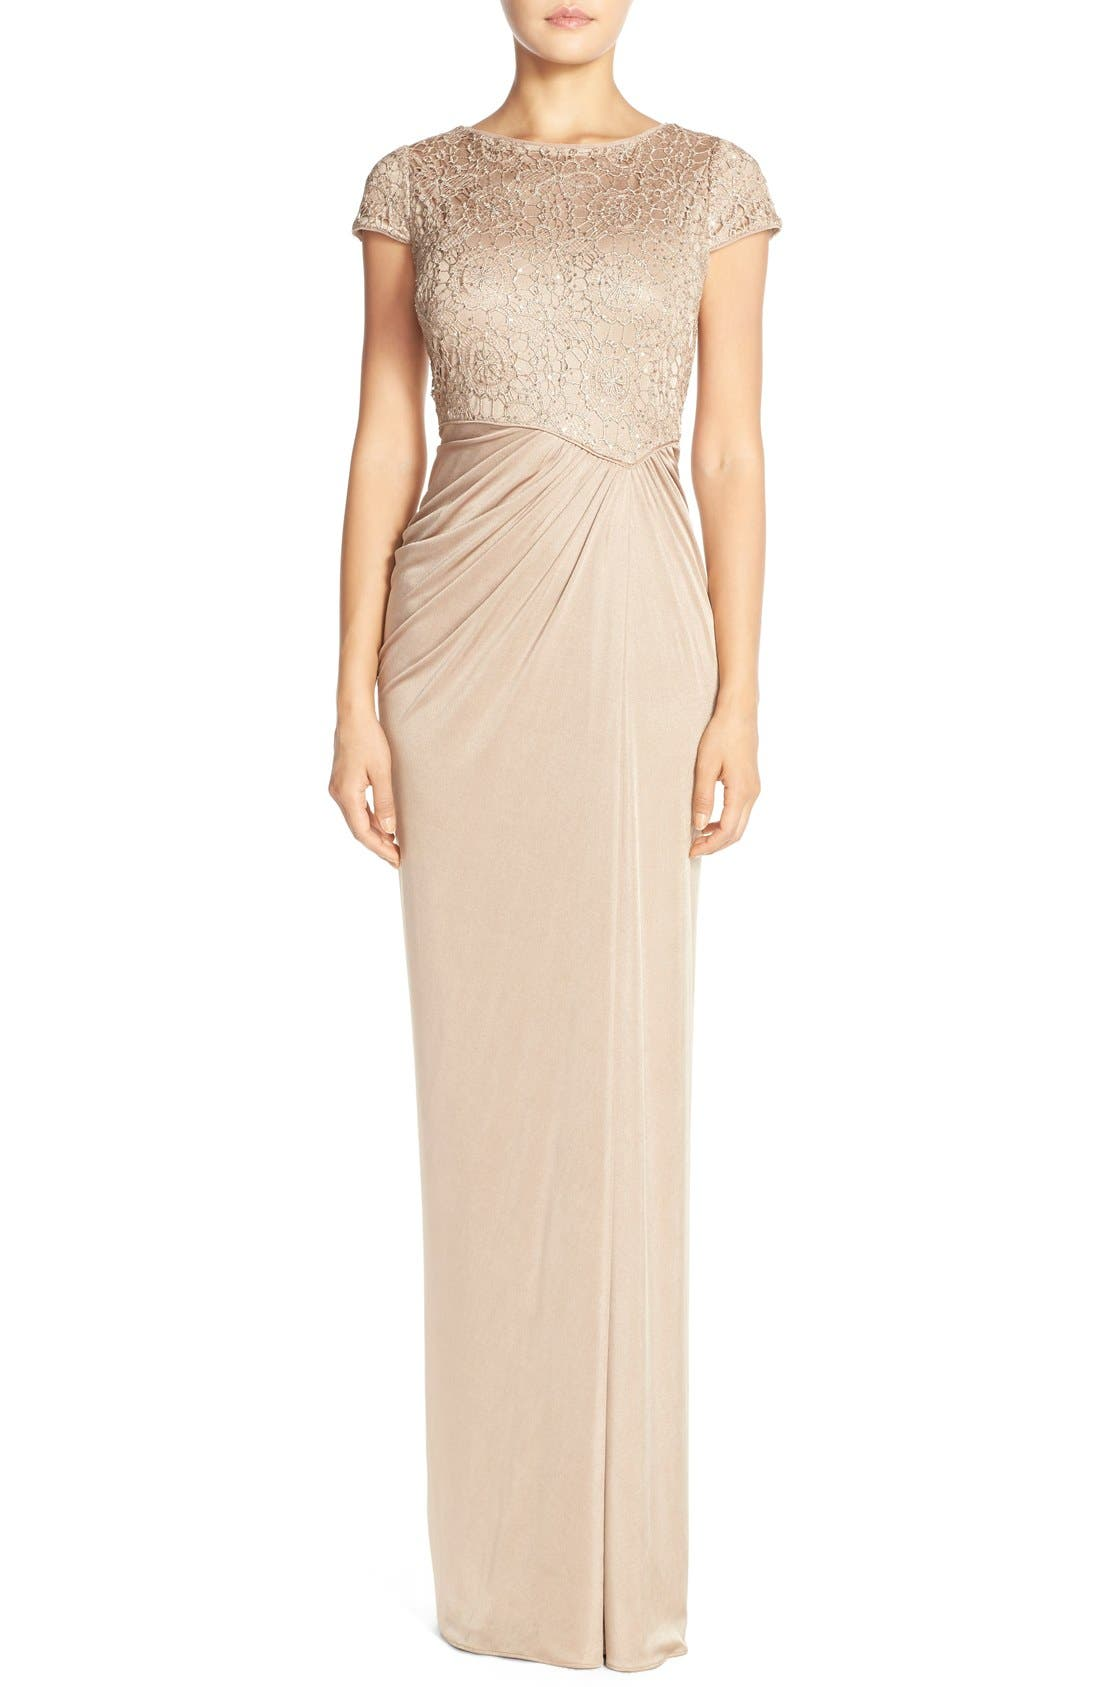 Alternate Image 1 Selected - Adrianna Papell Lace & Ruched Jersey Gown